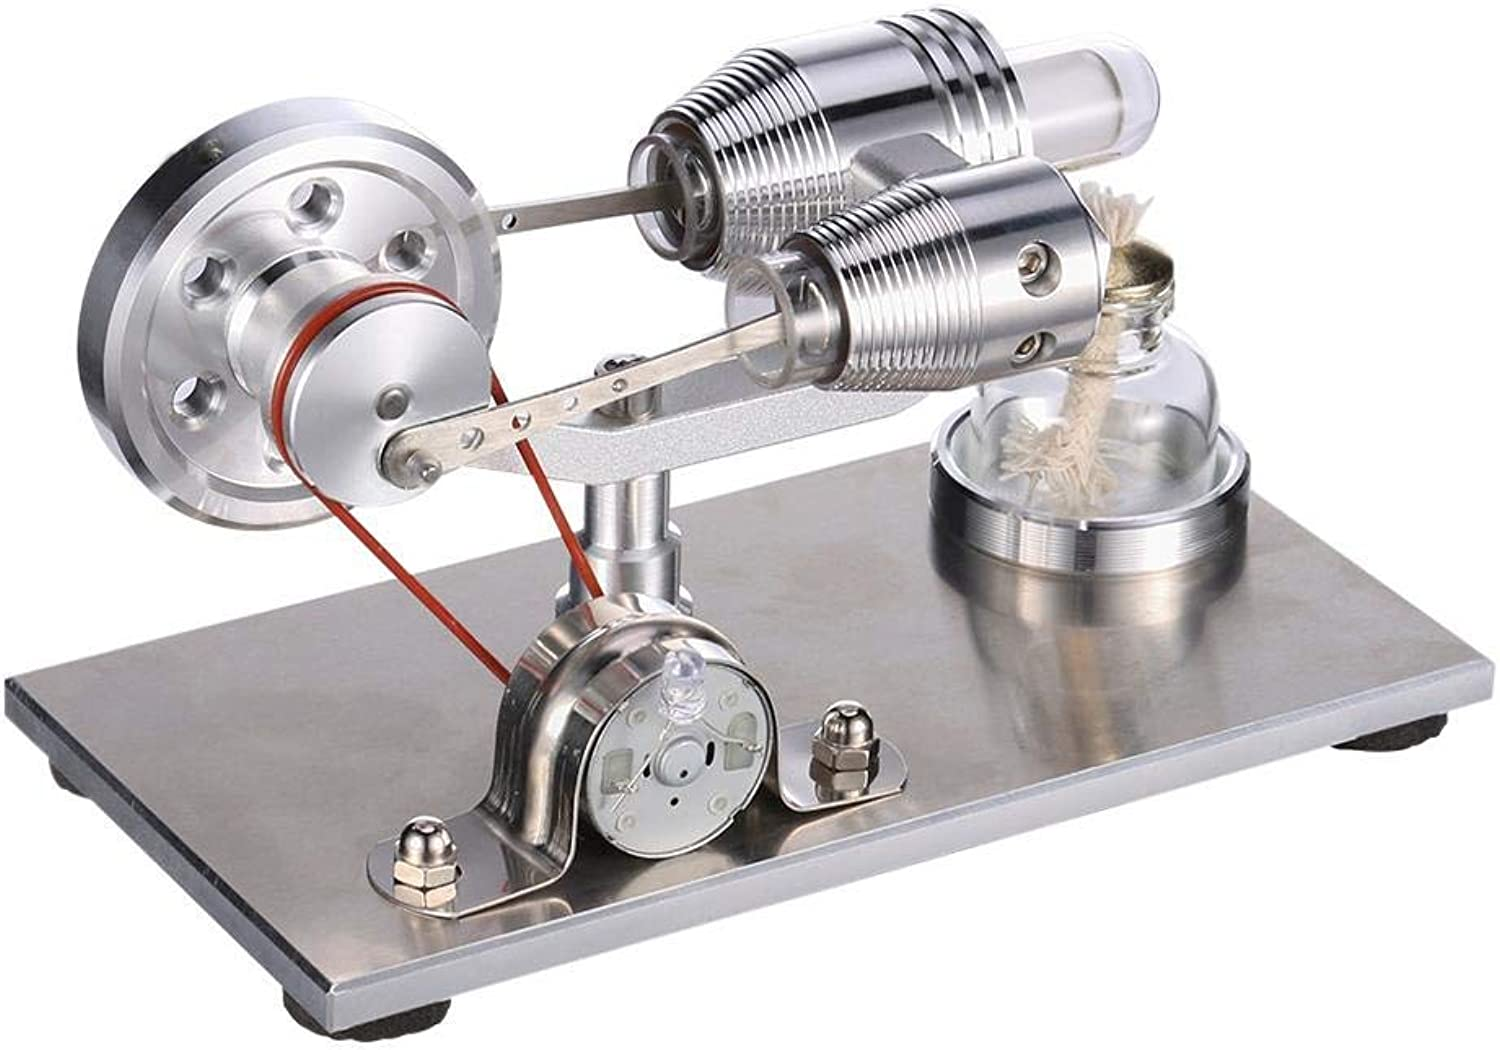 Beaulies Stirling Kids Metal Stirling Engine Motor Model Steam Power Physics Experiment Toys